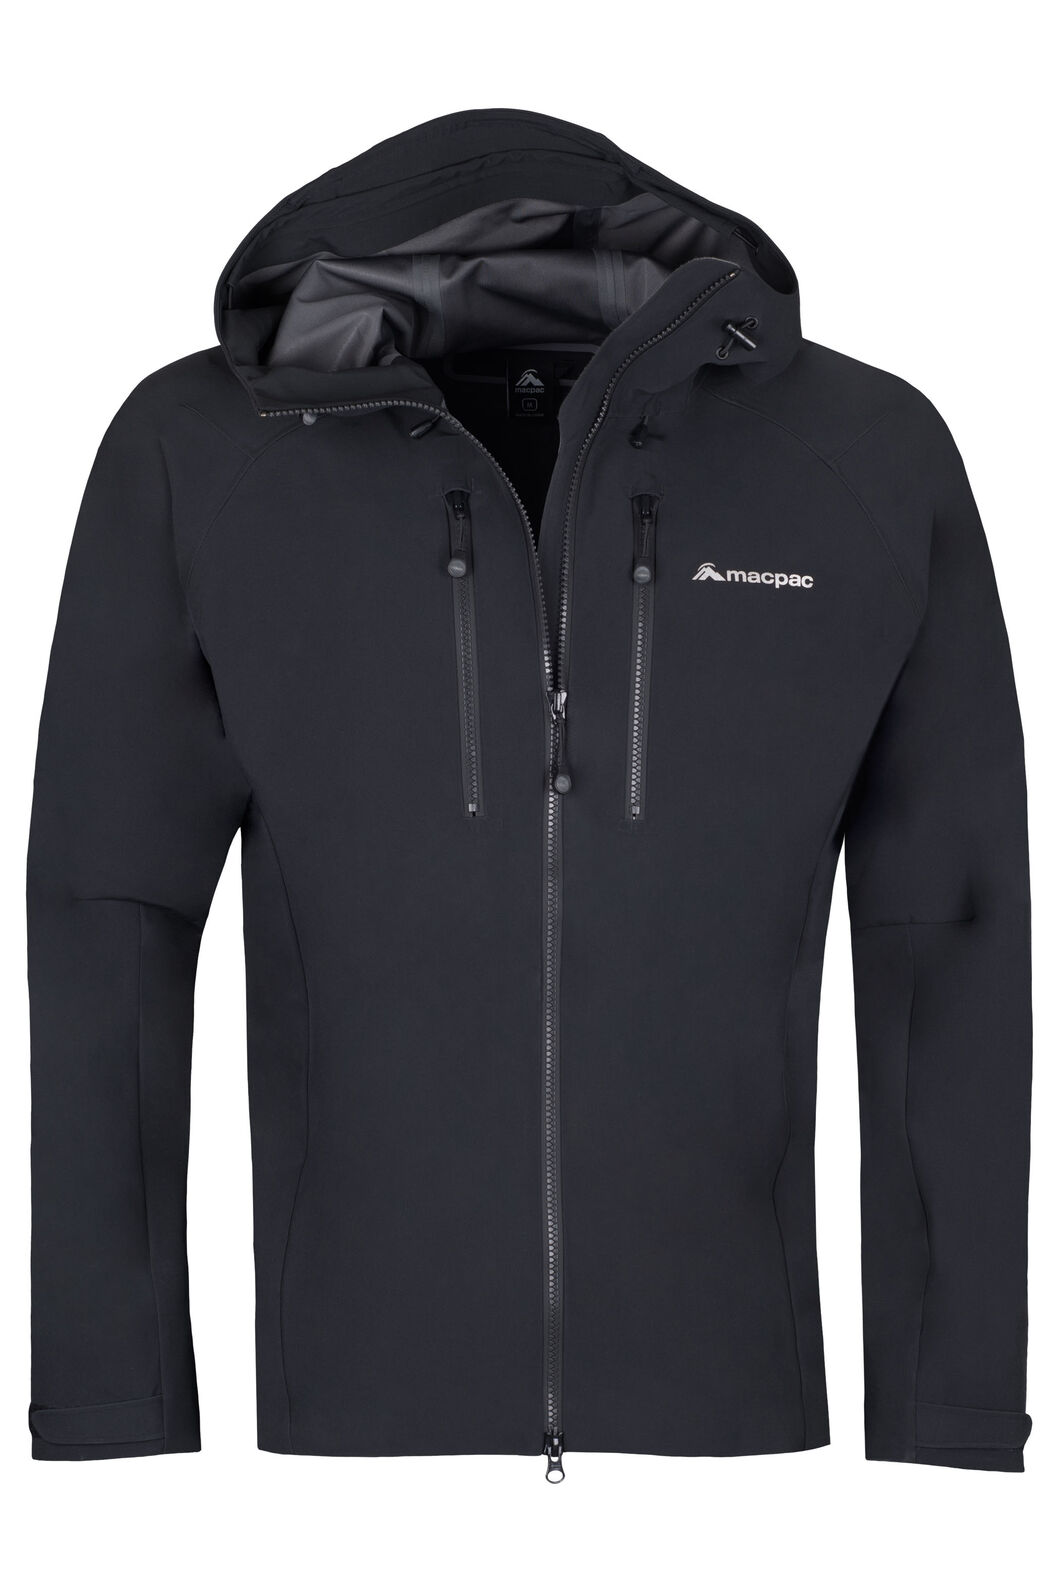 Macpac Fitzroy Alpine Series Softshell Jacket - Men's, Black, hi-res